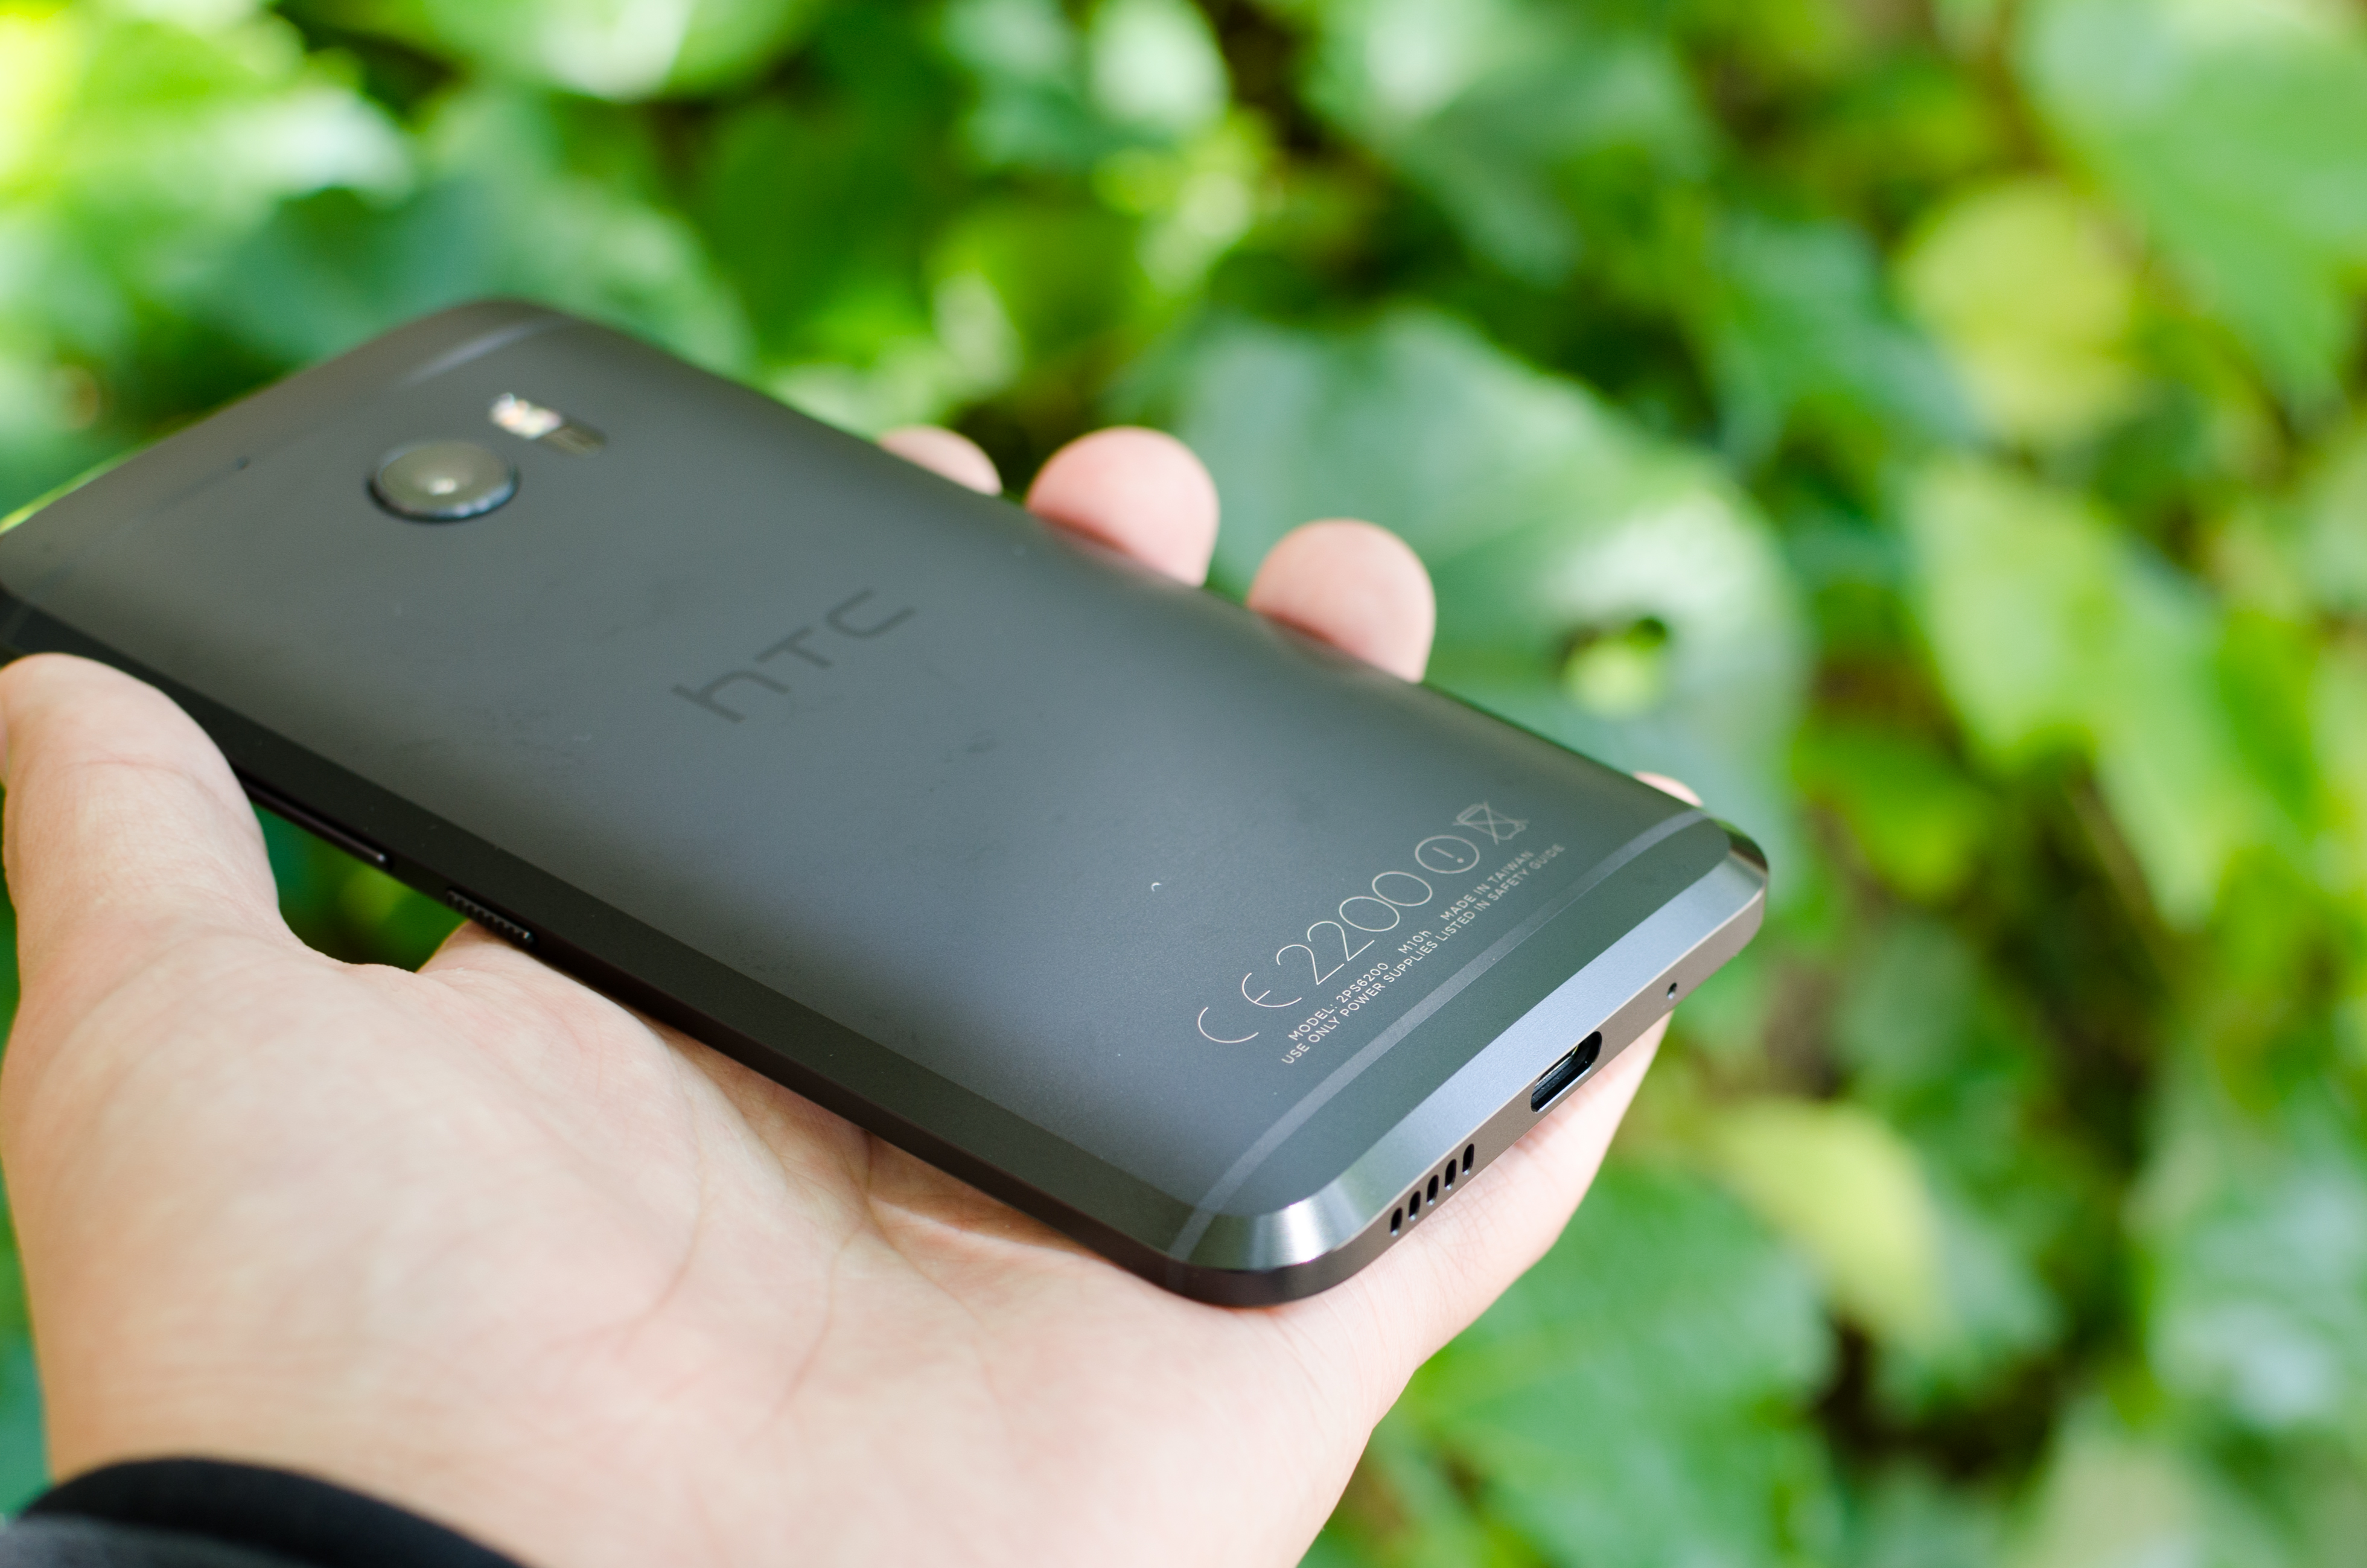 Hands On With The HTC 10: A Fresh Start